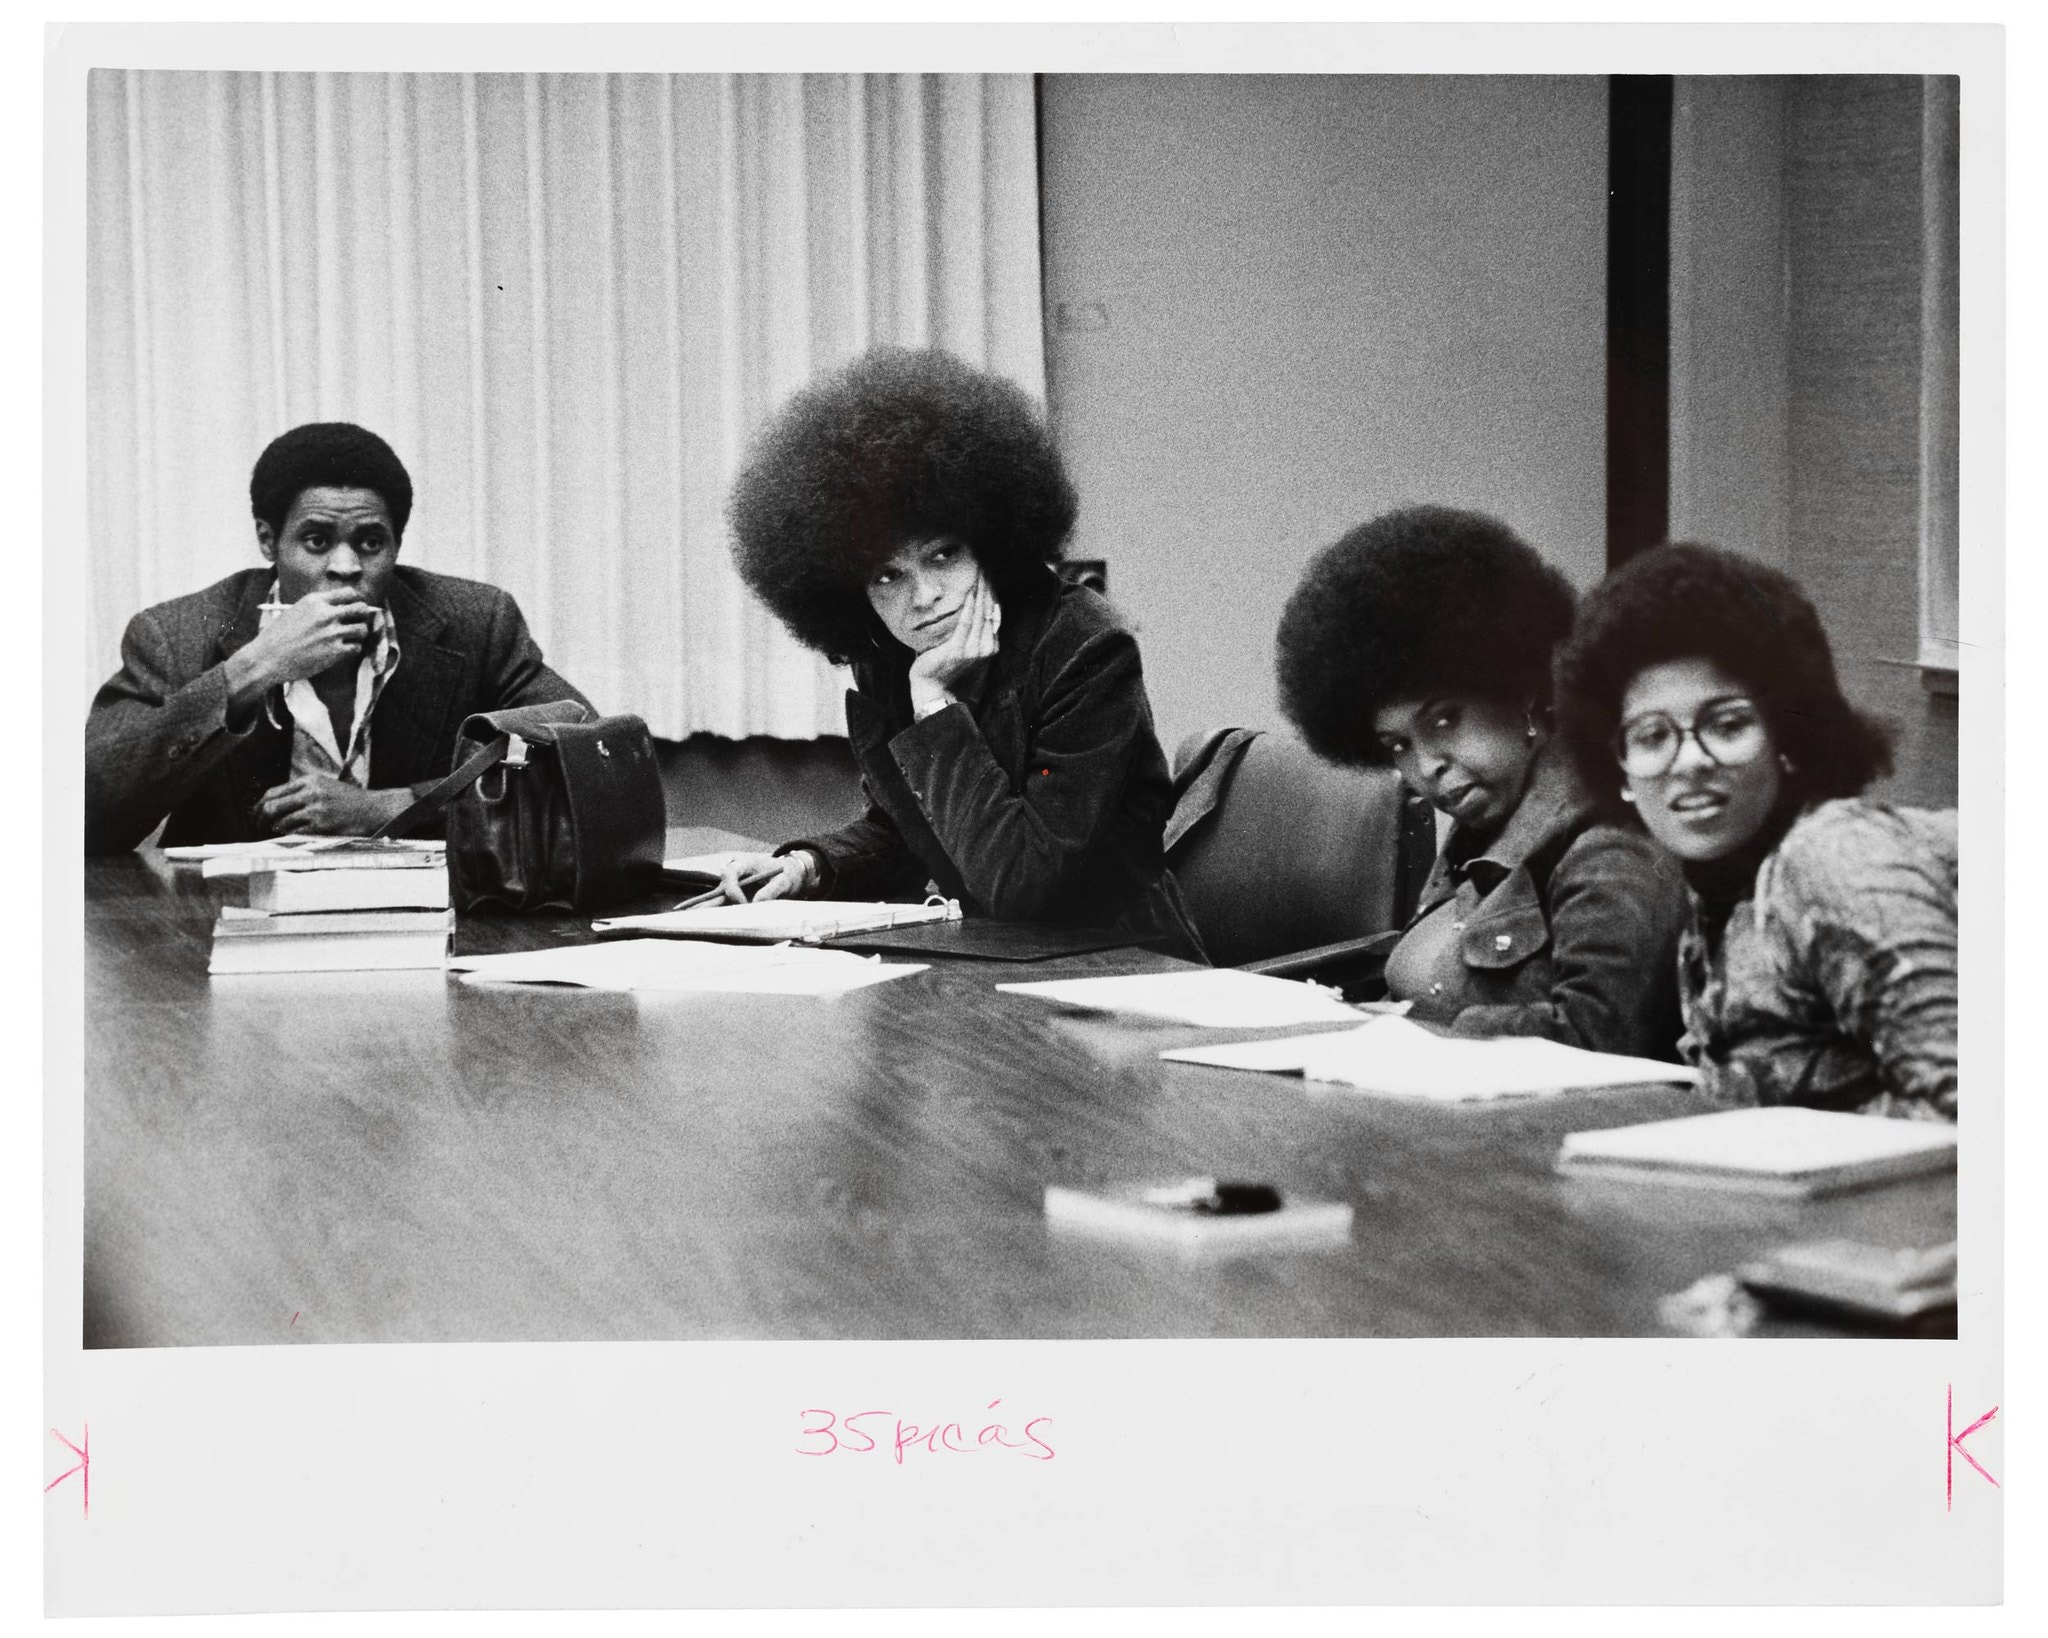 Angela Davis sitting in class with 3 others.